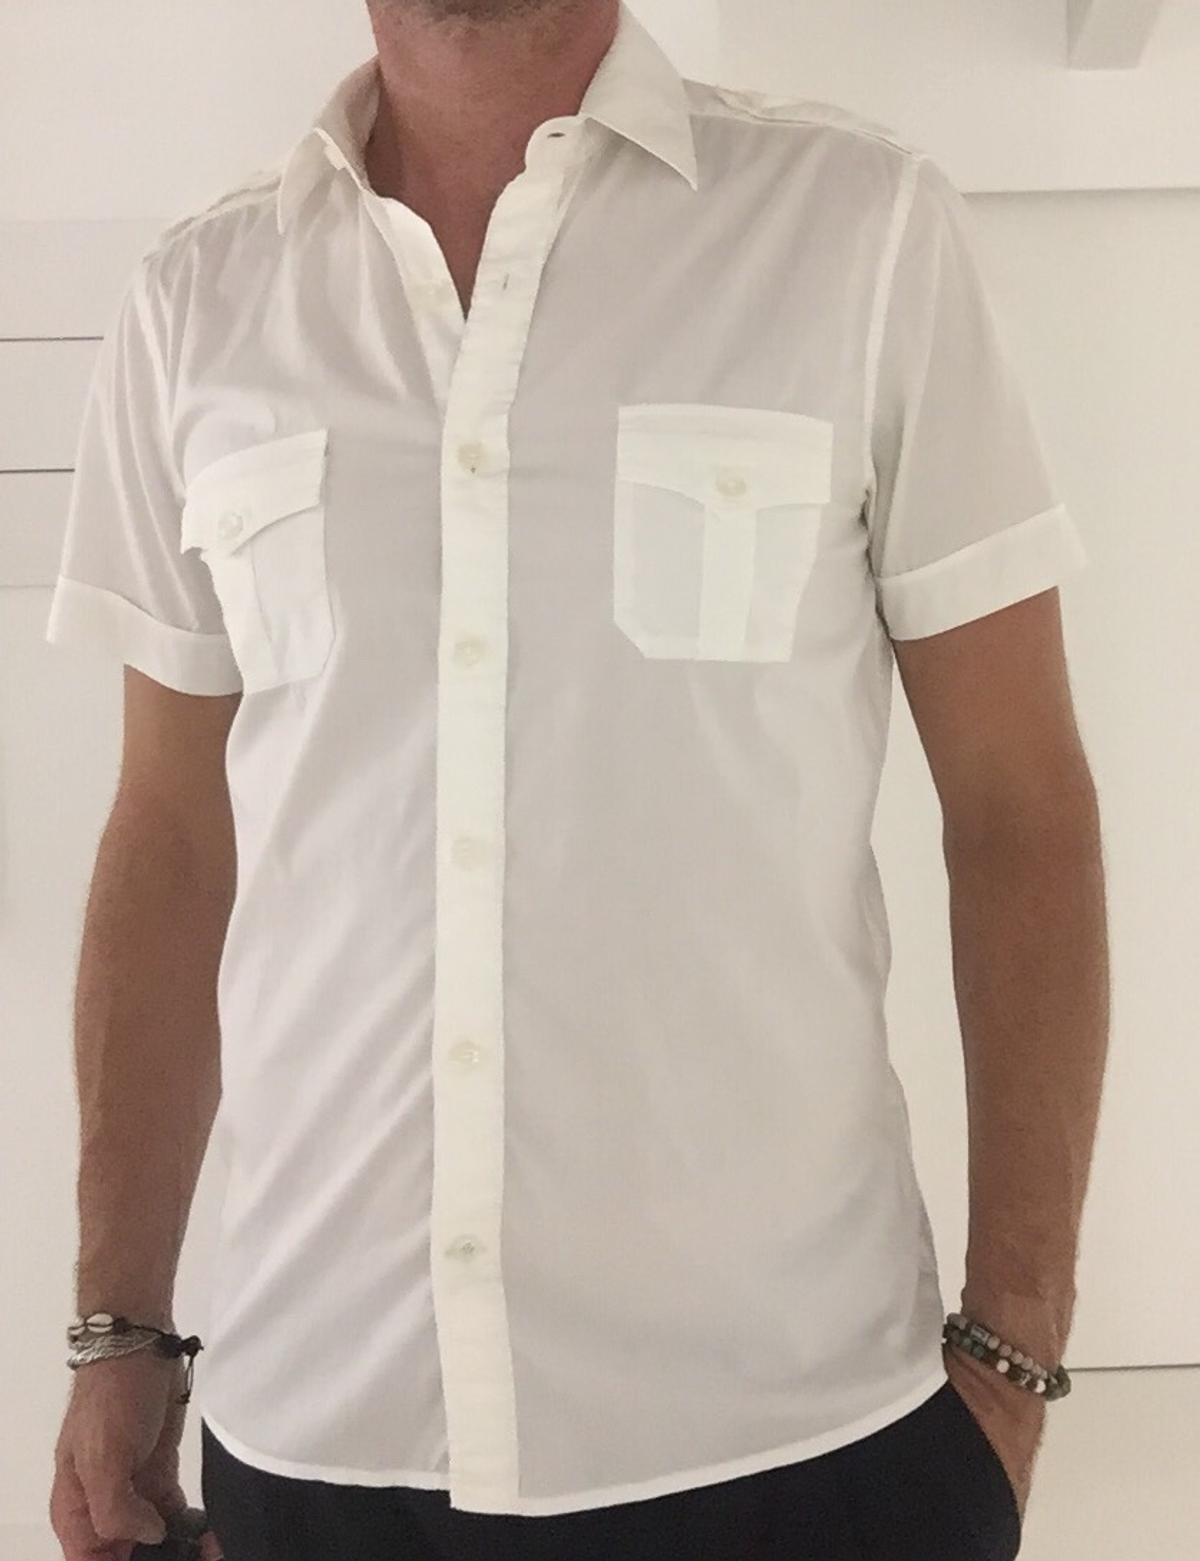 newest aac94 2390f Camicia uomo Guess in 20834 Nova Milanese for €40.00 for ...